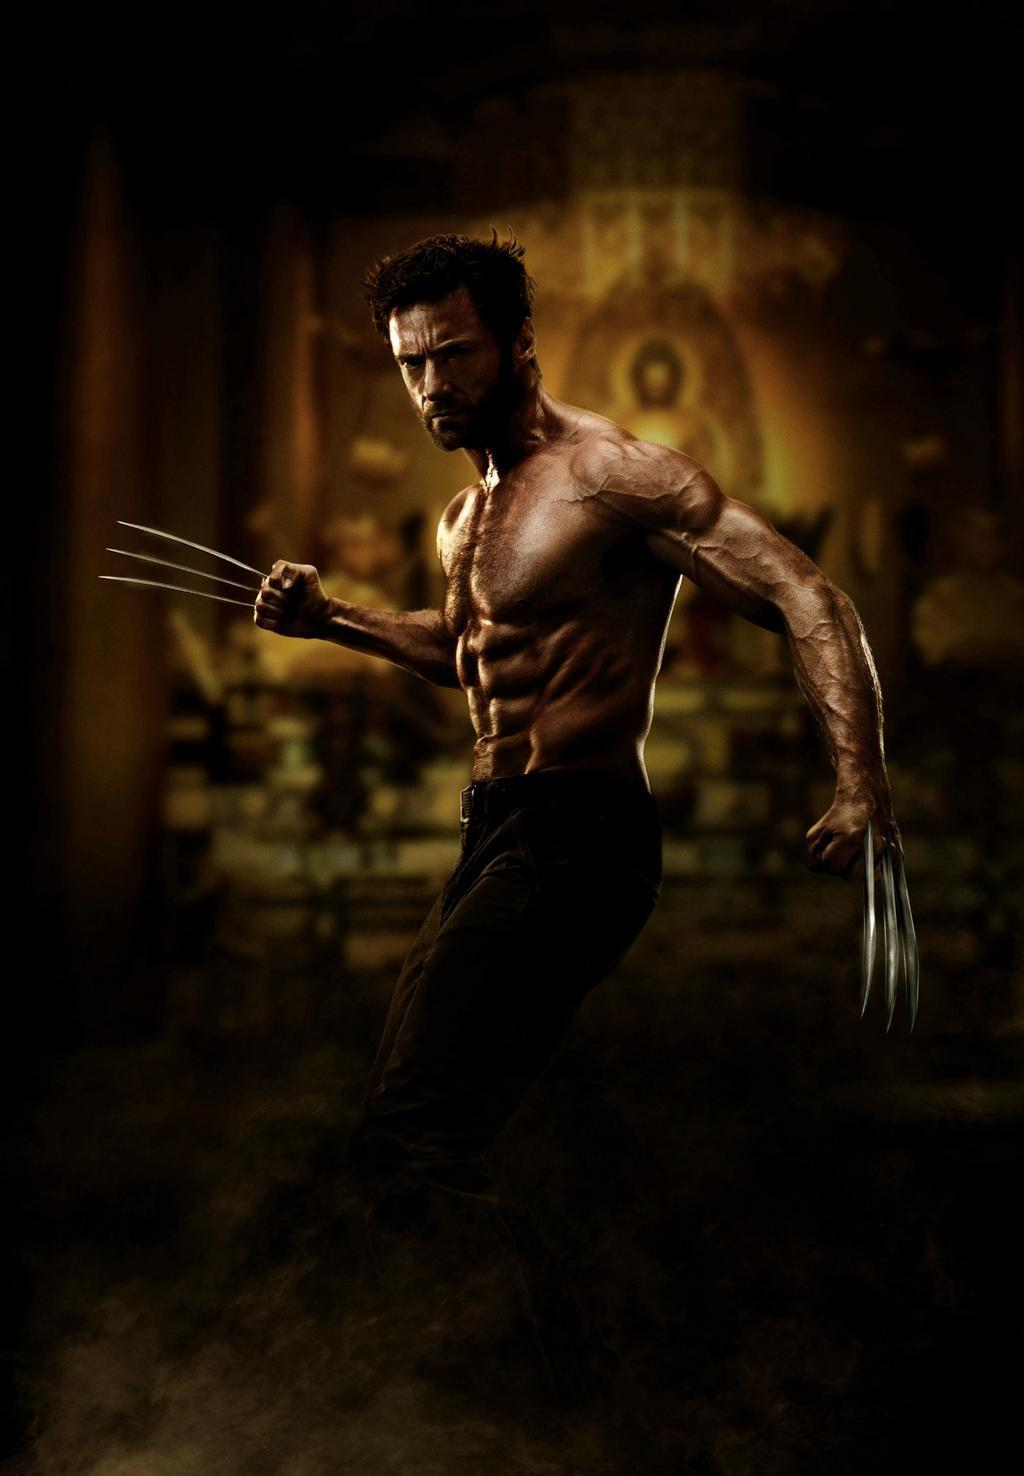 191416 518092604873273 212198147 o The First Official Photo From The Wolverine Released